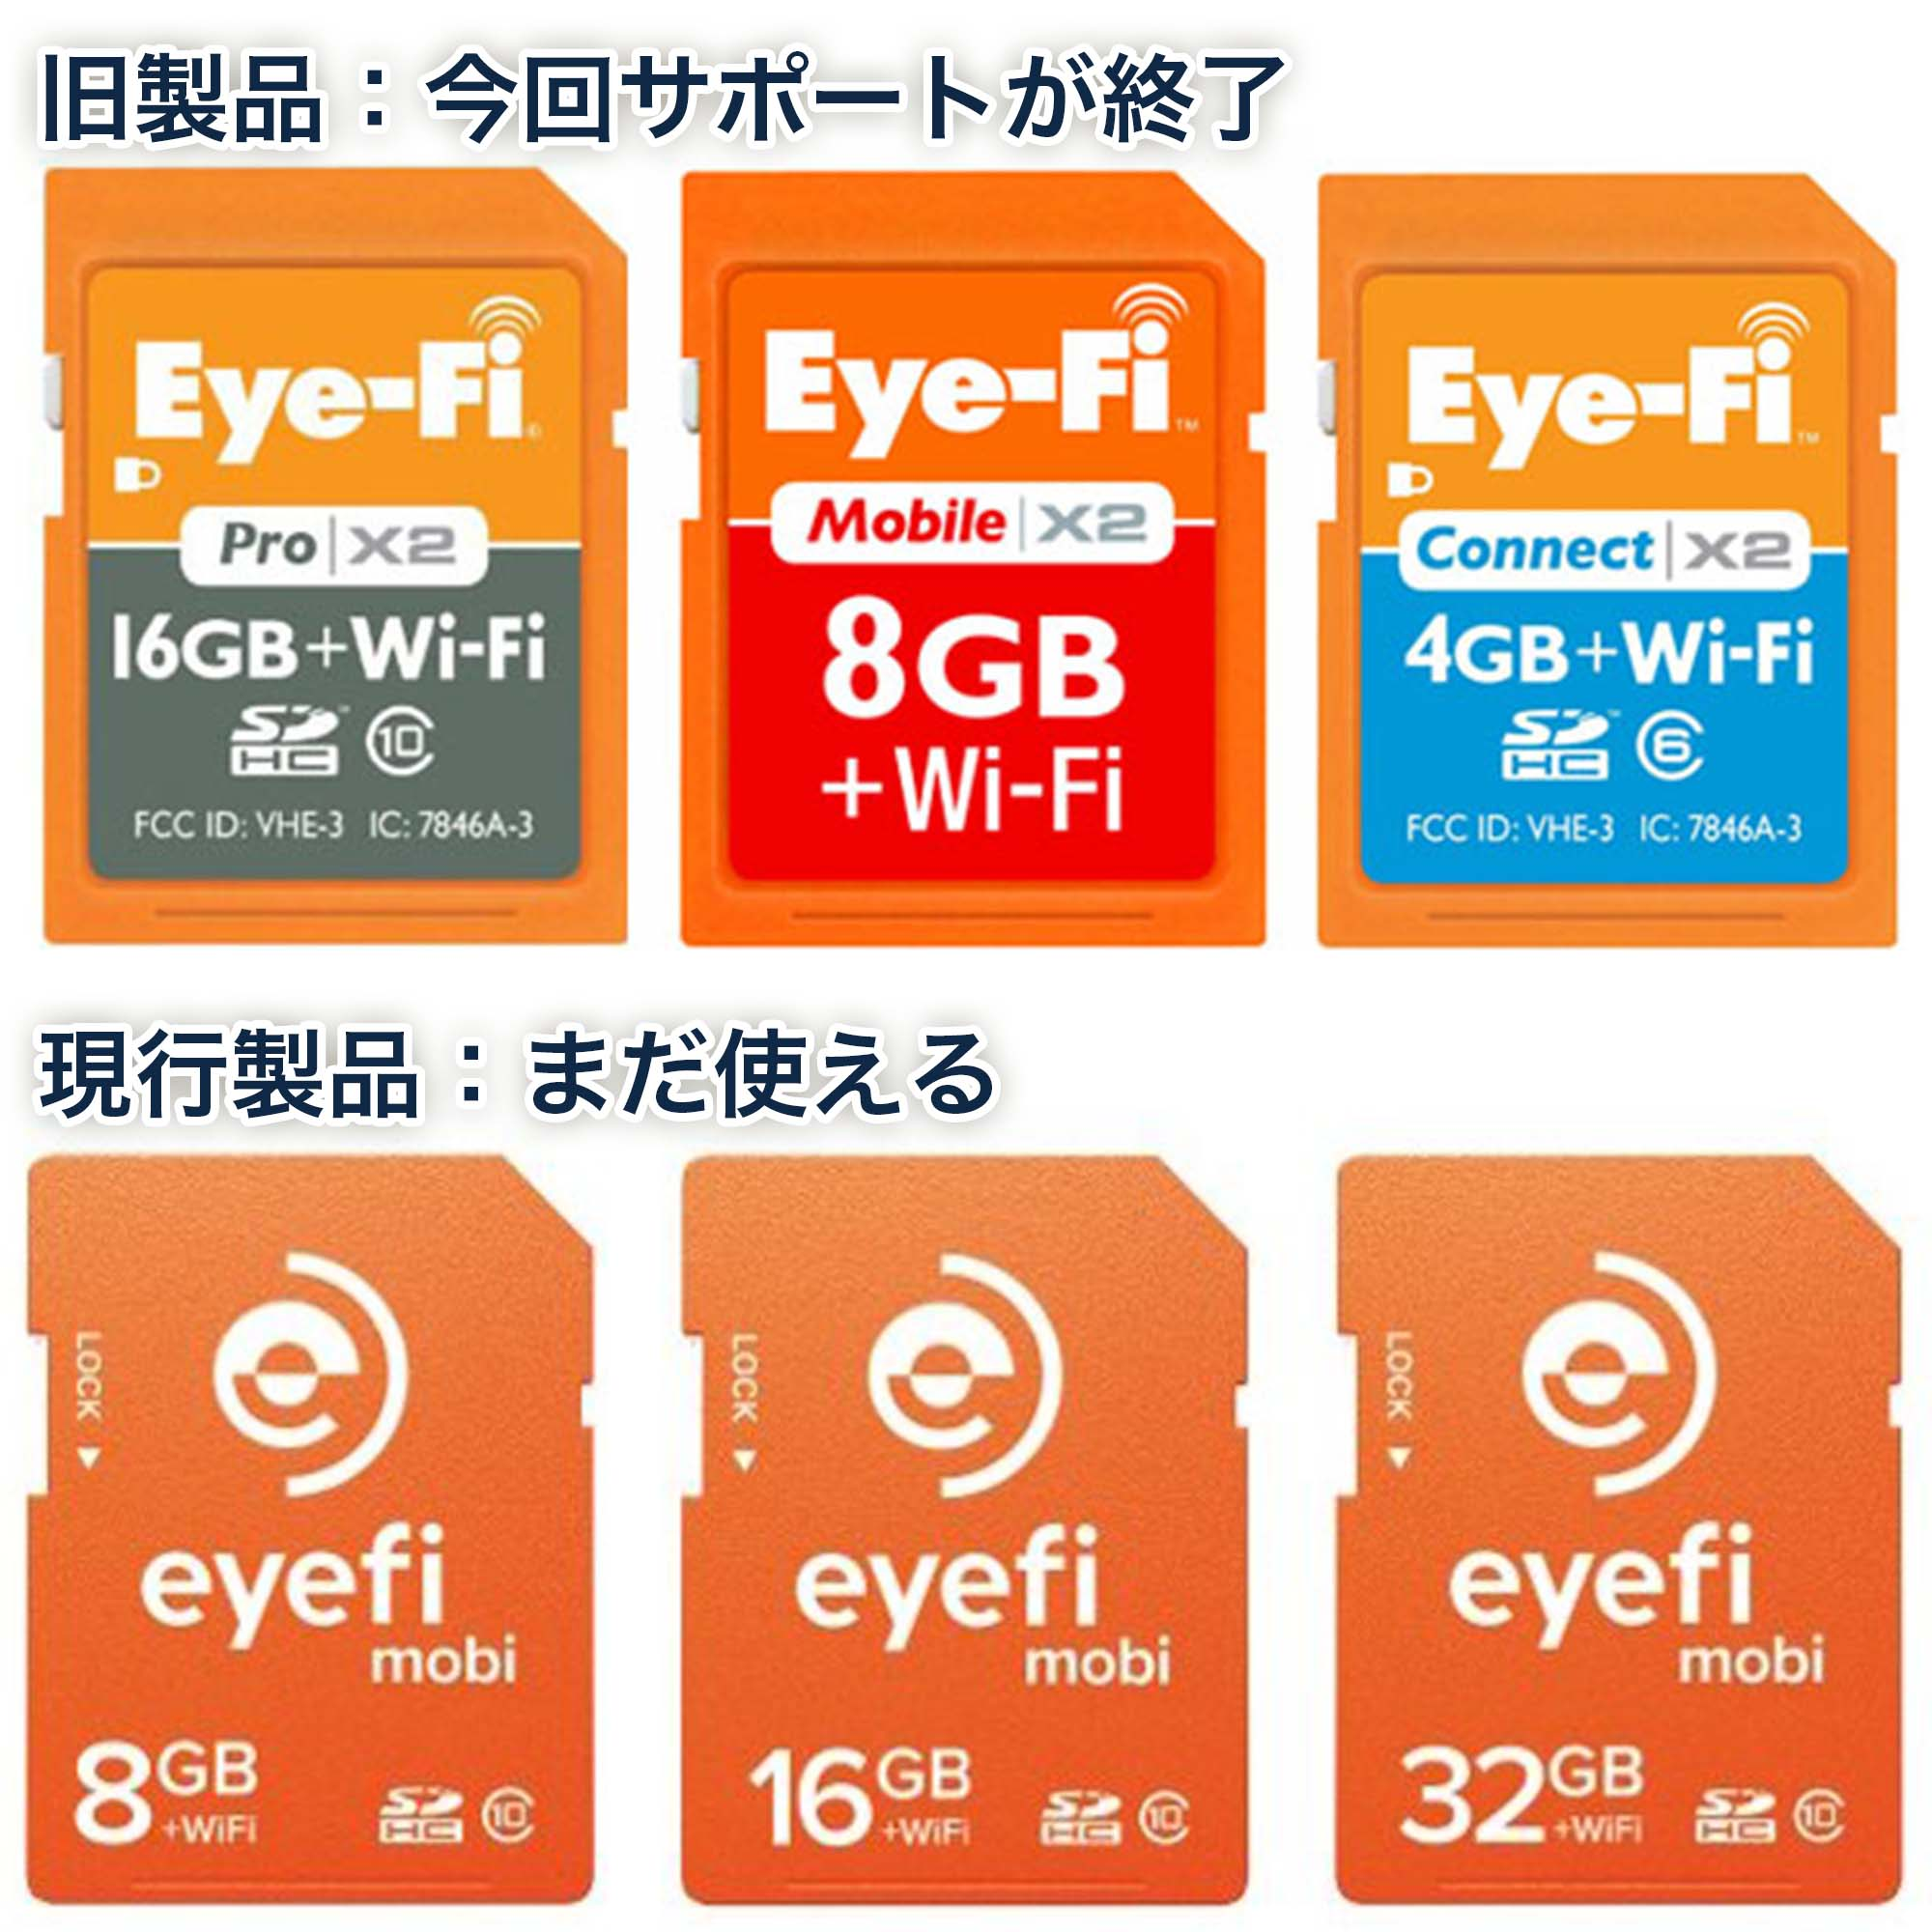 eyefi_products